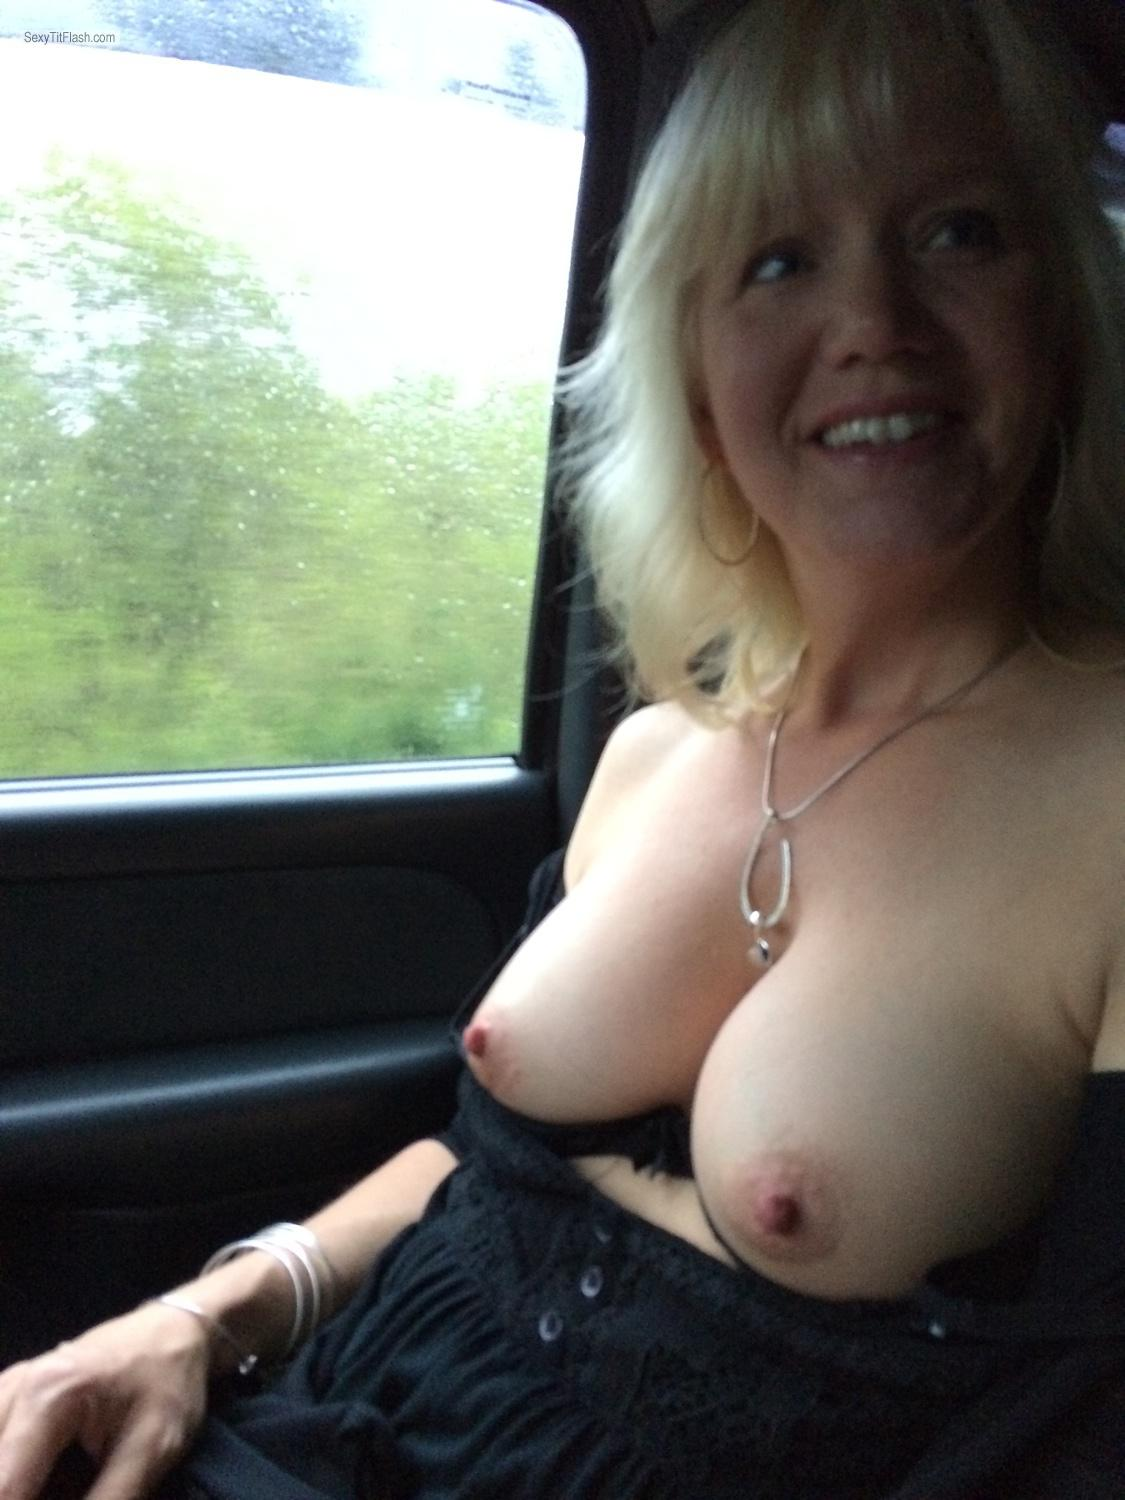 Tit Flash: Medium Tits By IPhone - Topless Miss V from United States